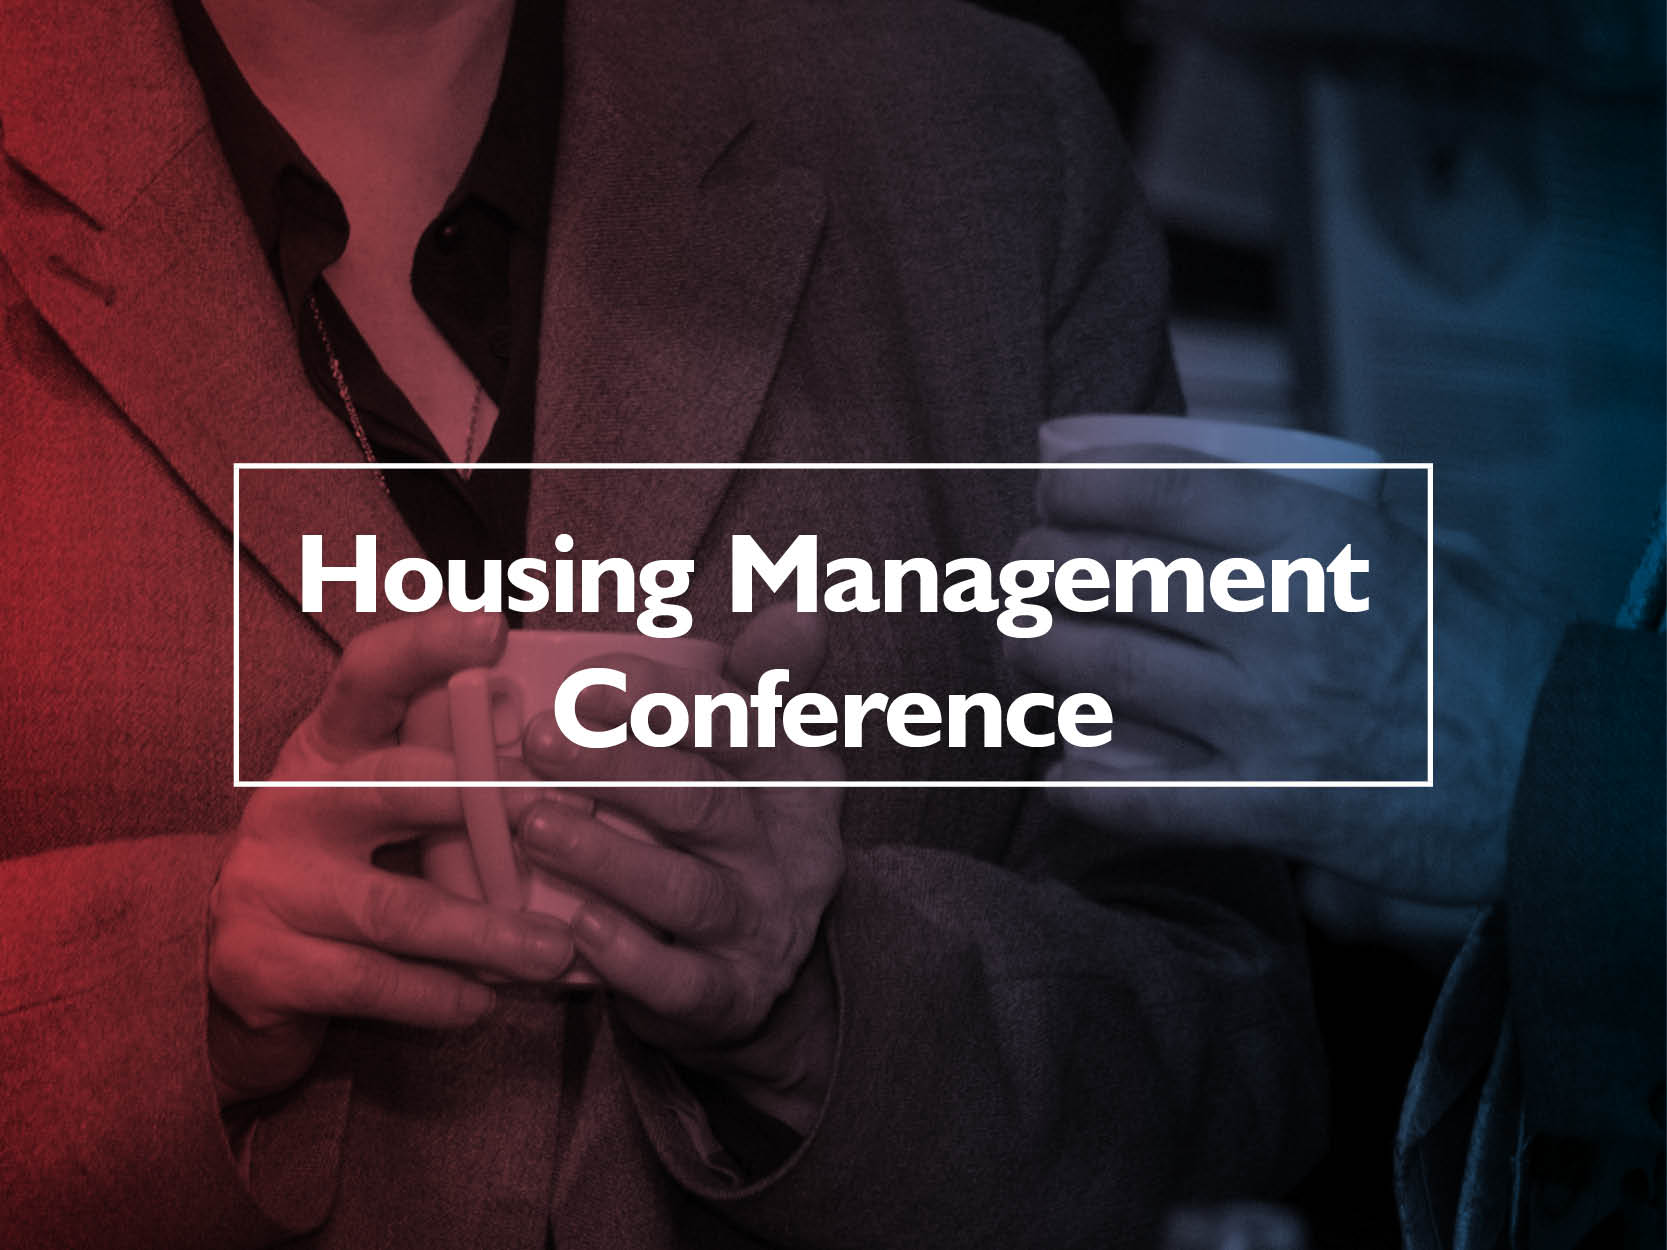 Programme announced for SFHA Housing Management Conference